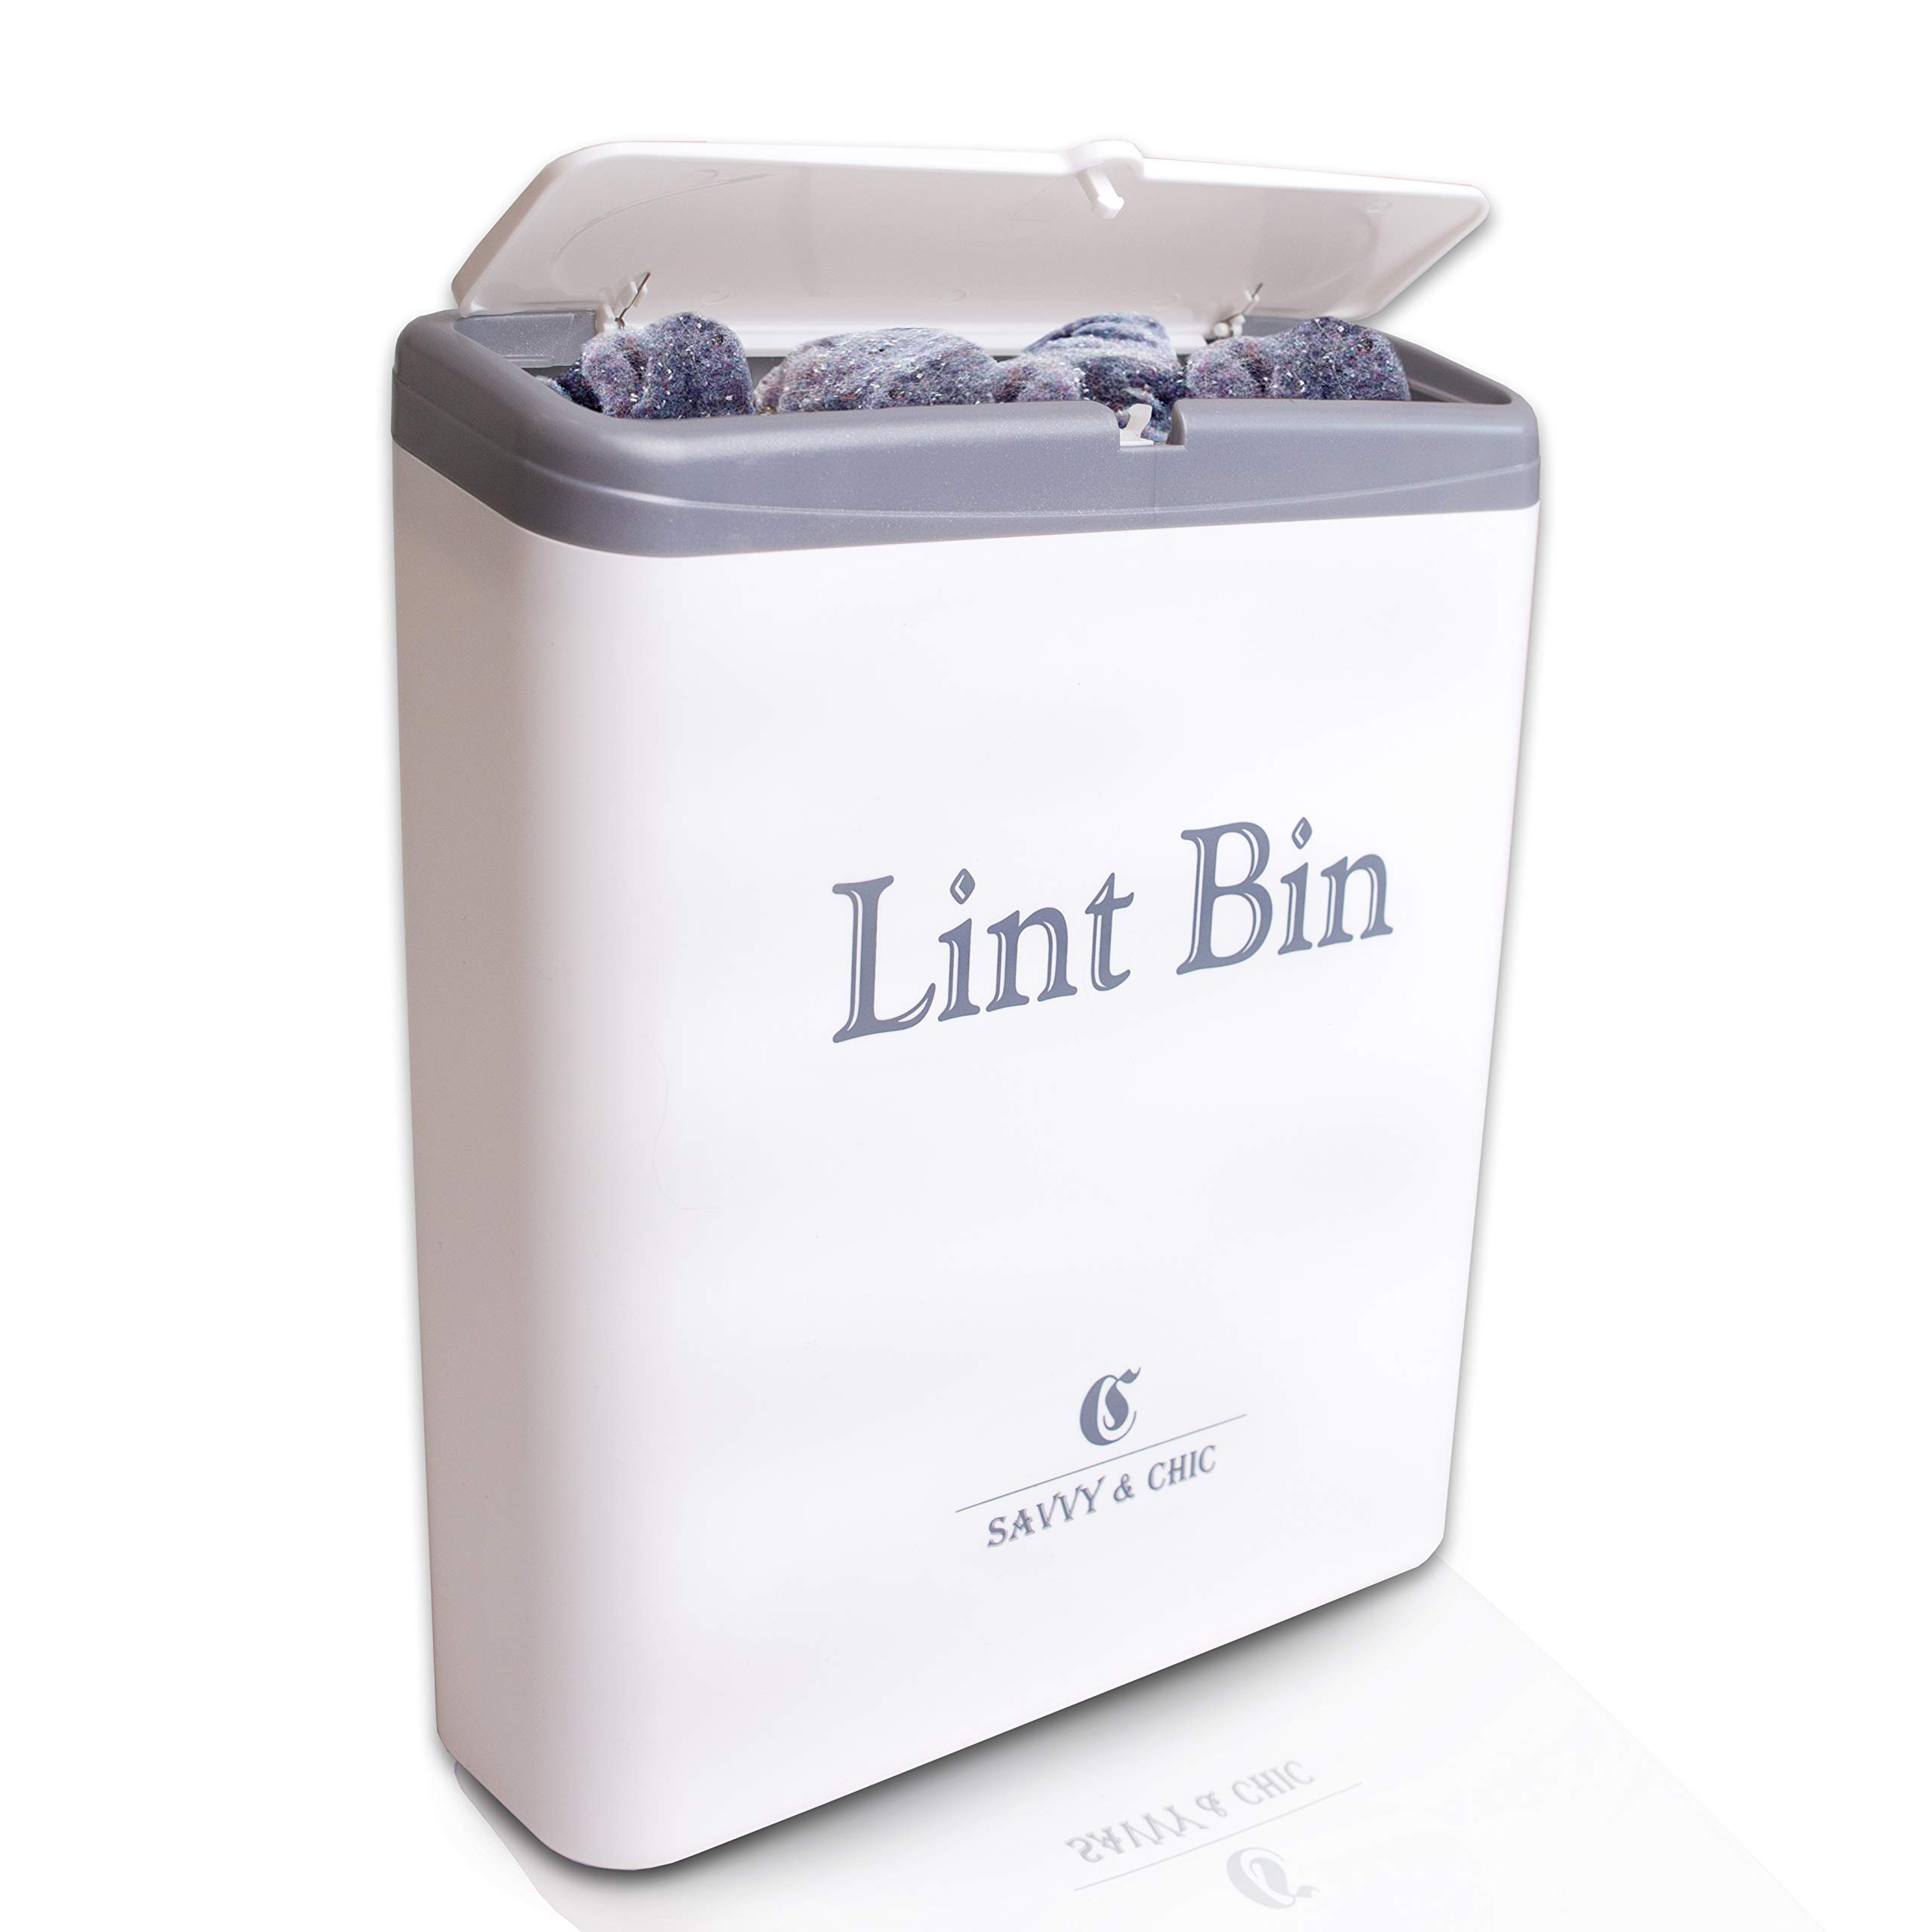 SAVVY & CHIC Lint Bin with Lid Laundry Room Organizer - Small Trash Bin, Tiny Waste Can - Magnetic or Wall Mountable Mini Garbage Storage, Warm White